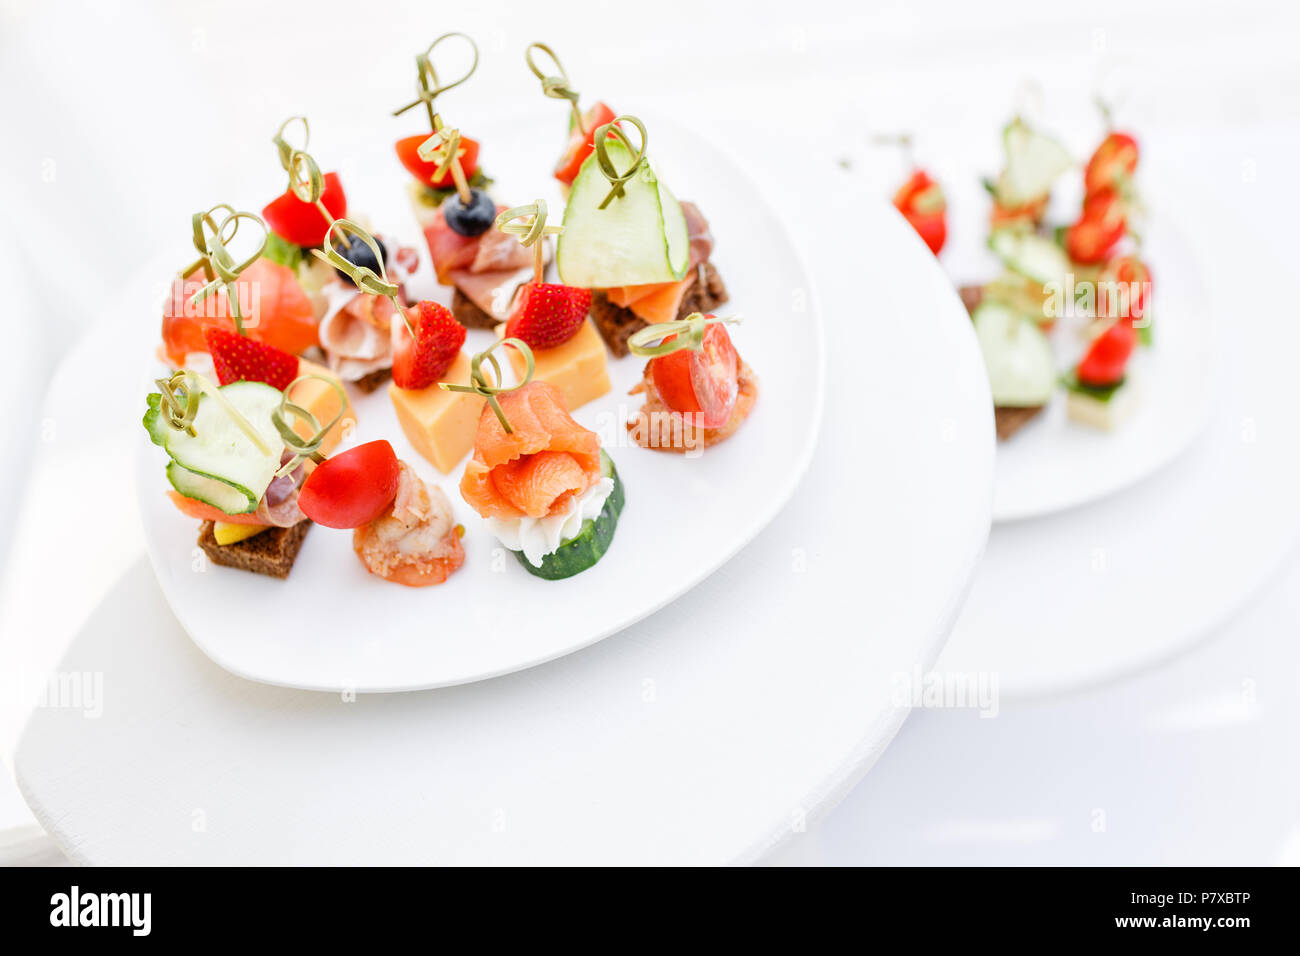 Assortment of canapes. Banquet service in restaurant . Catering food, snacks on white plate - Stock Image